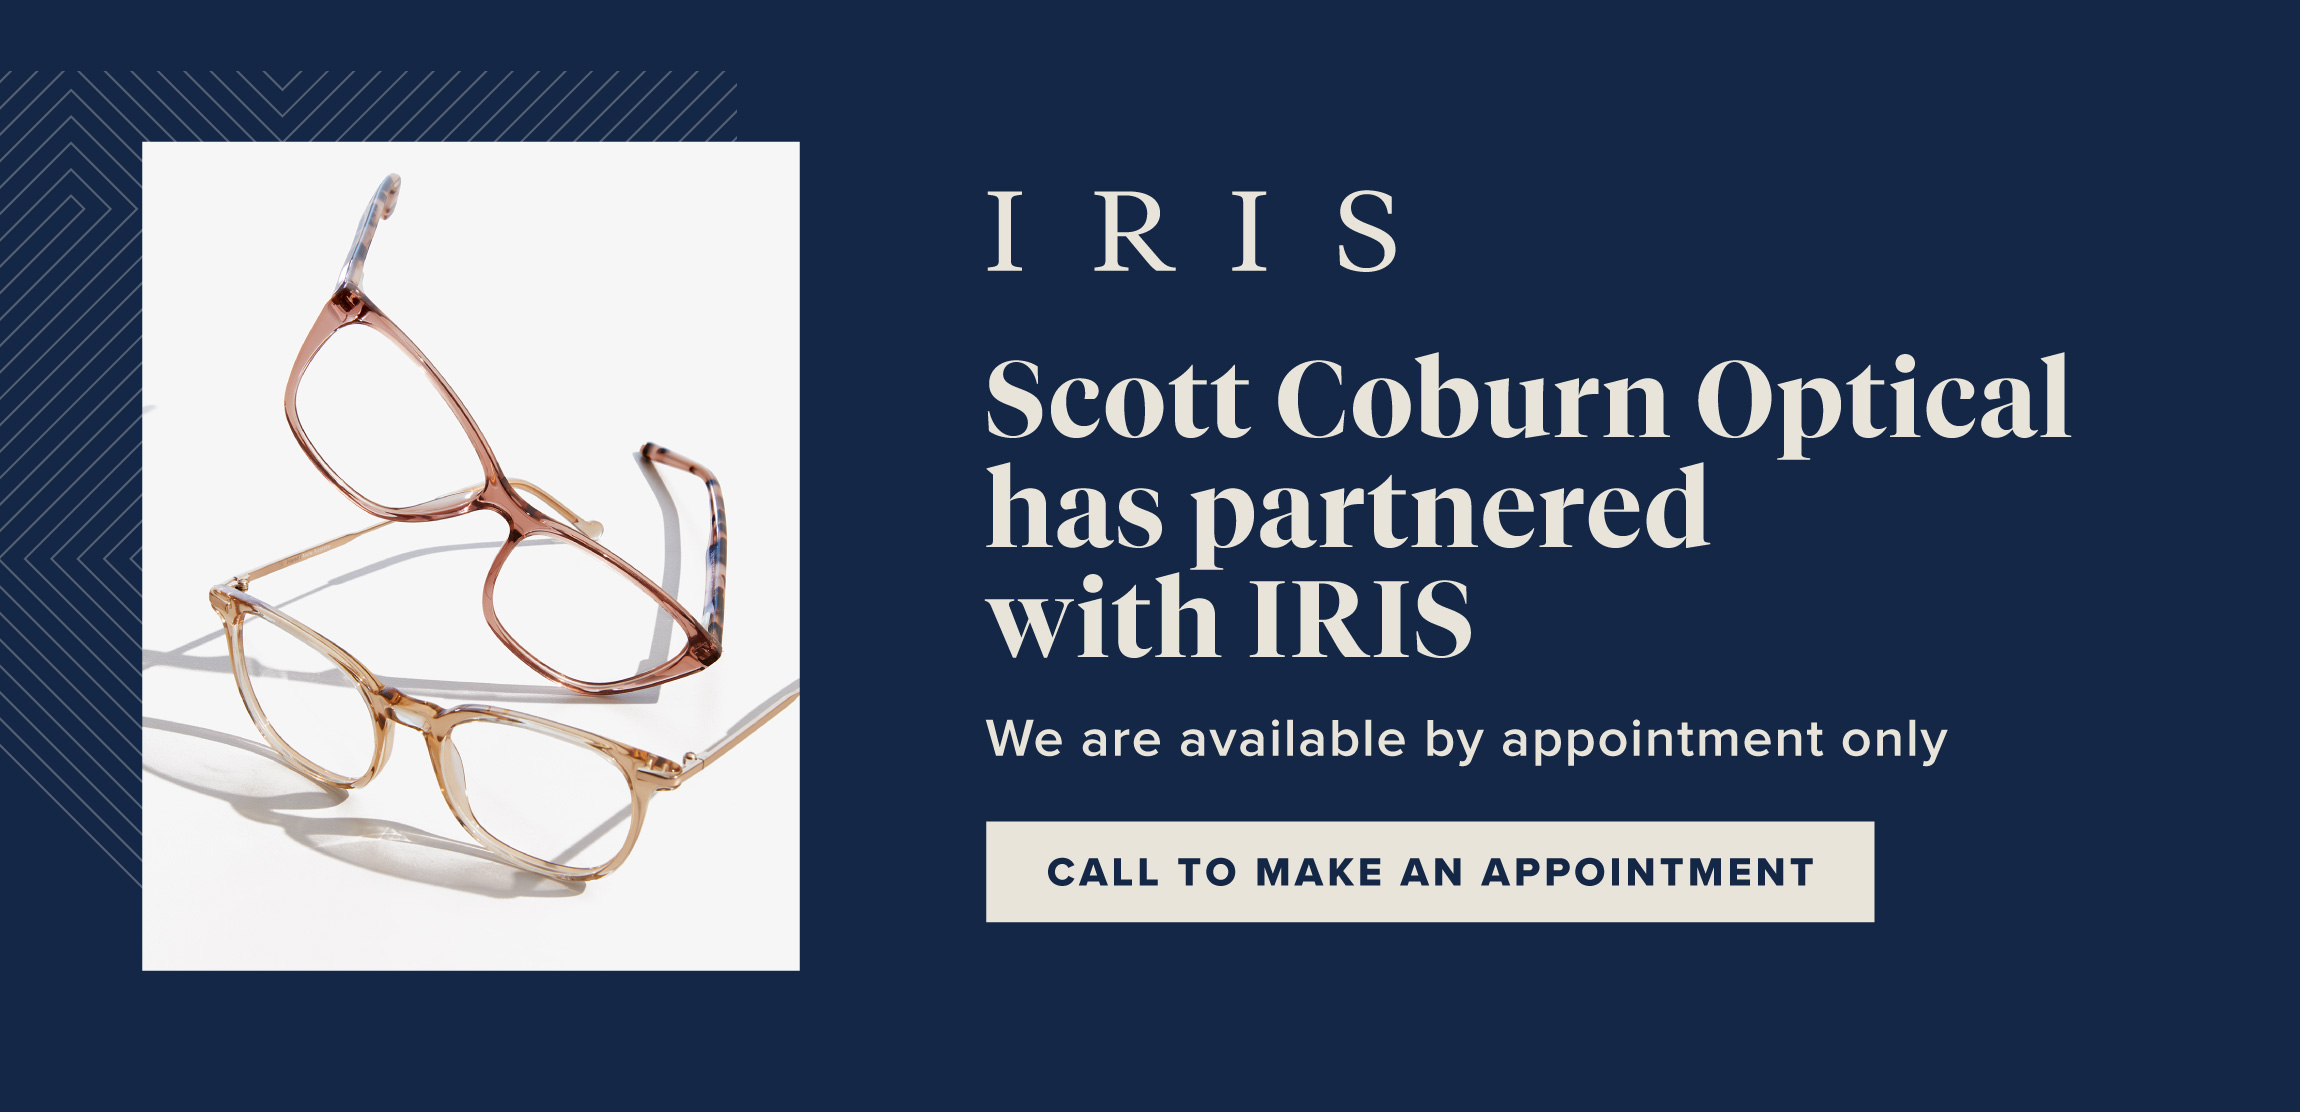 Scrott Coburn Optical has partnered with IRIS - We are available by appointment only